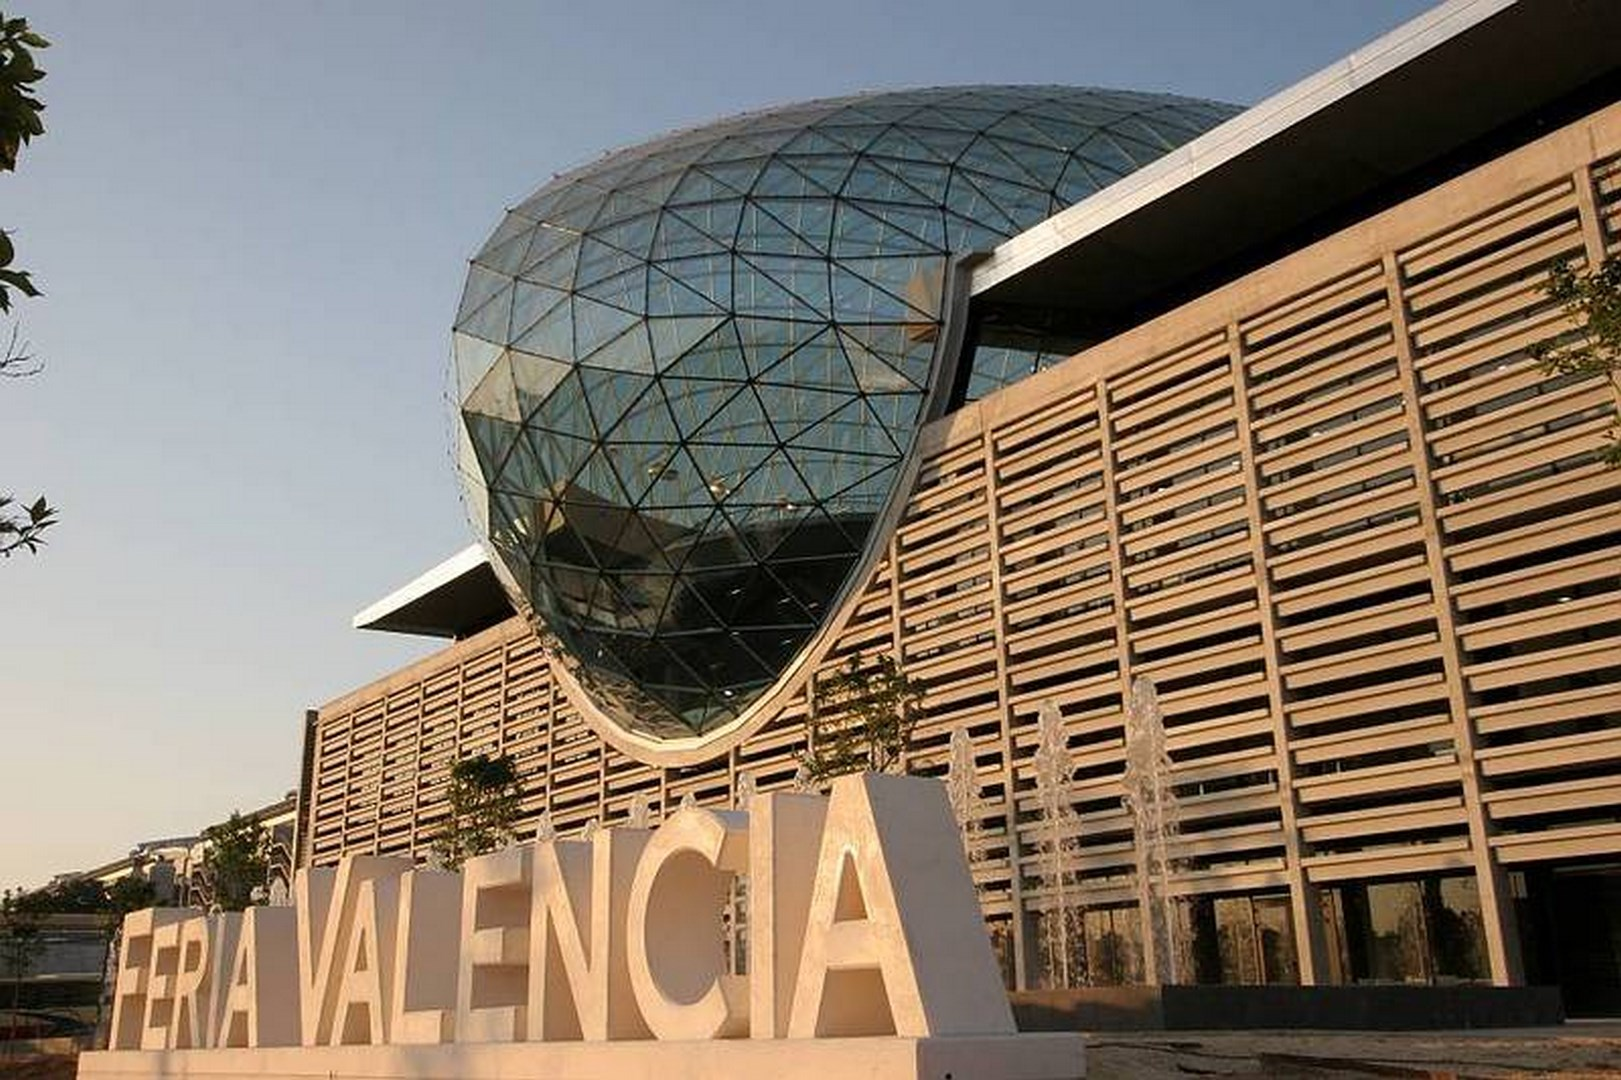 Main façade of the Valencia Trade Fair